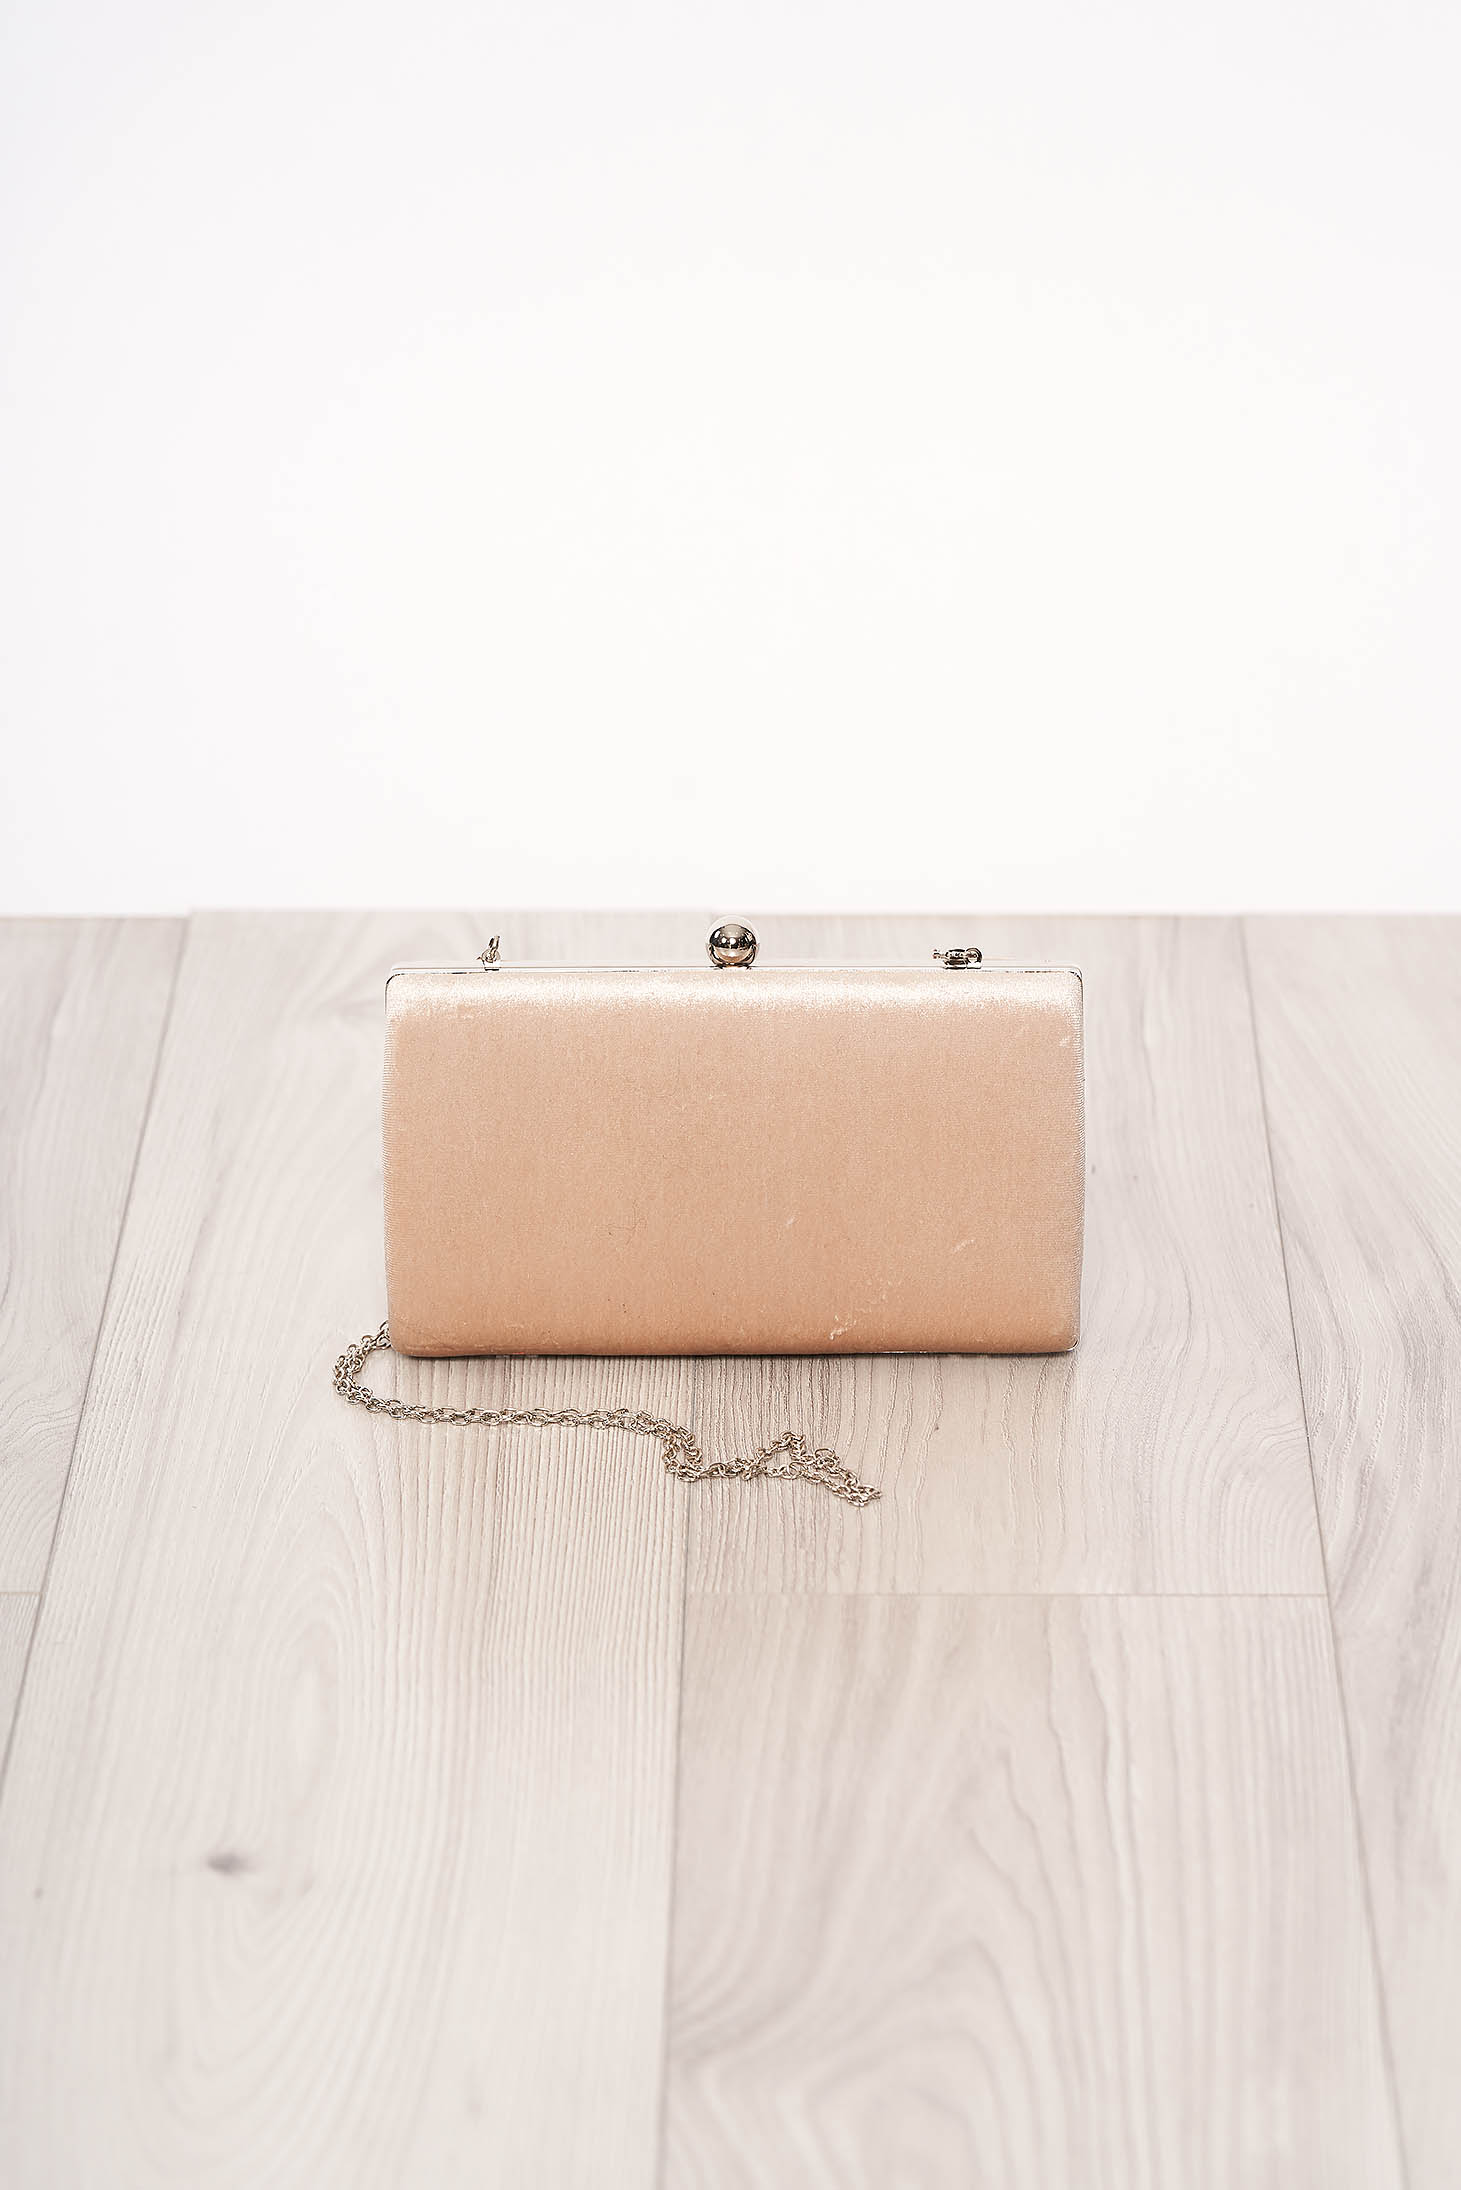 Bag cream long chain handle allure of satin buckle accessory from ecological suede occasional